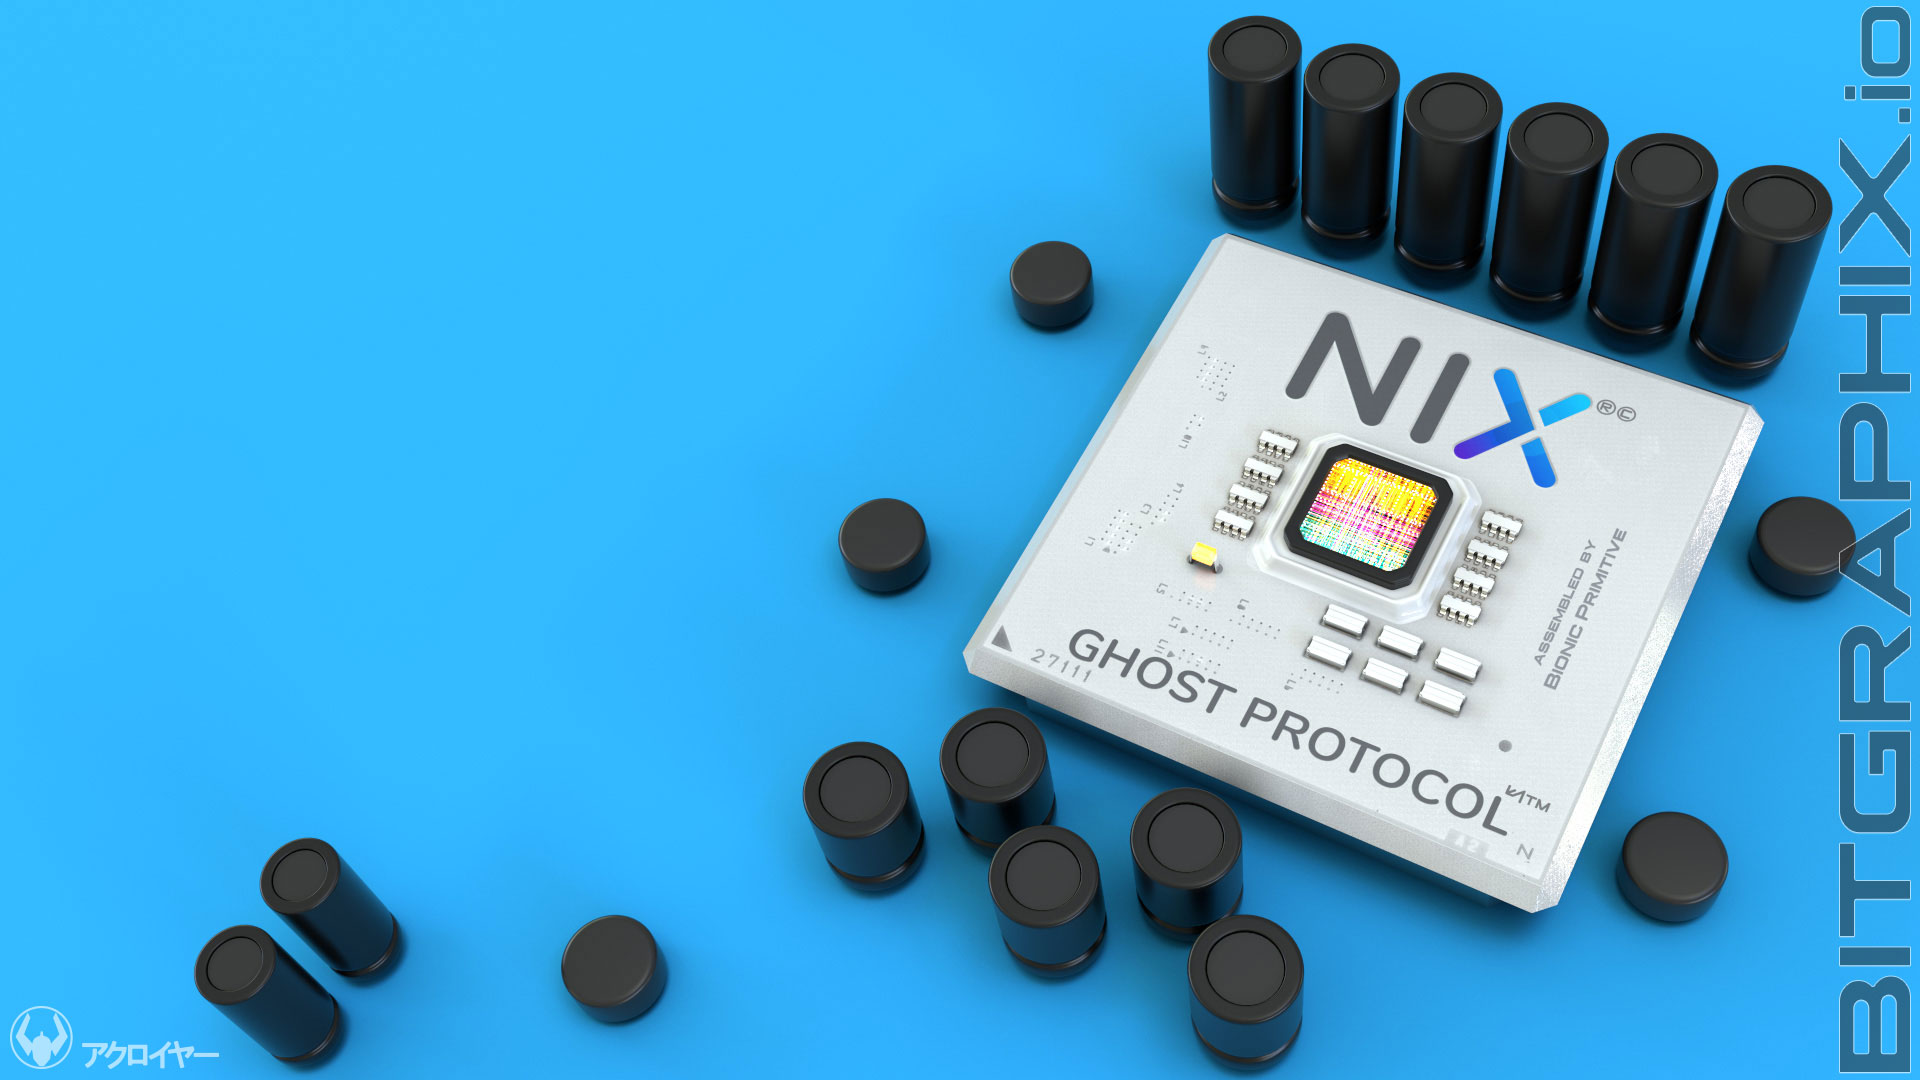 NIX-Platform-Ghost-Protocol-promotional-animation-cpu-detail-with-acroyear-signature-3d-vfx-redshift-render